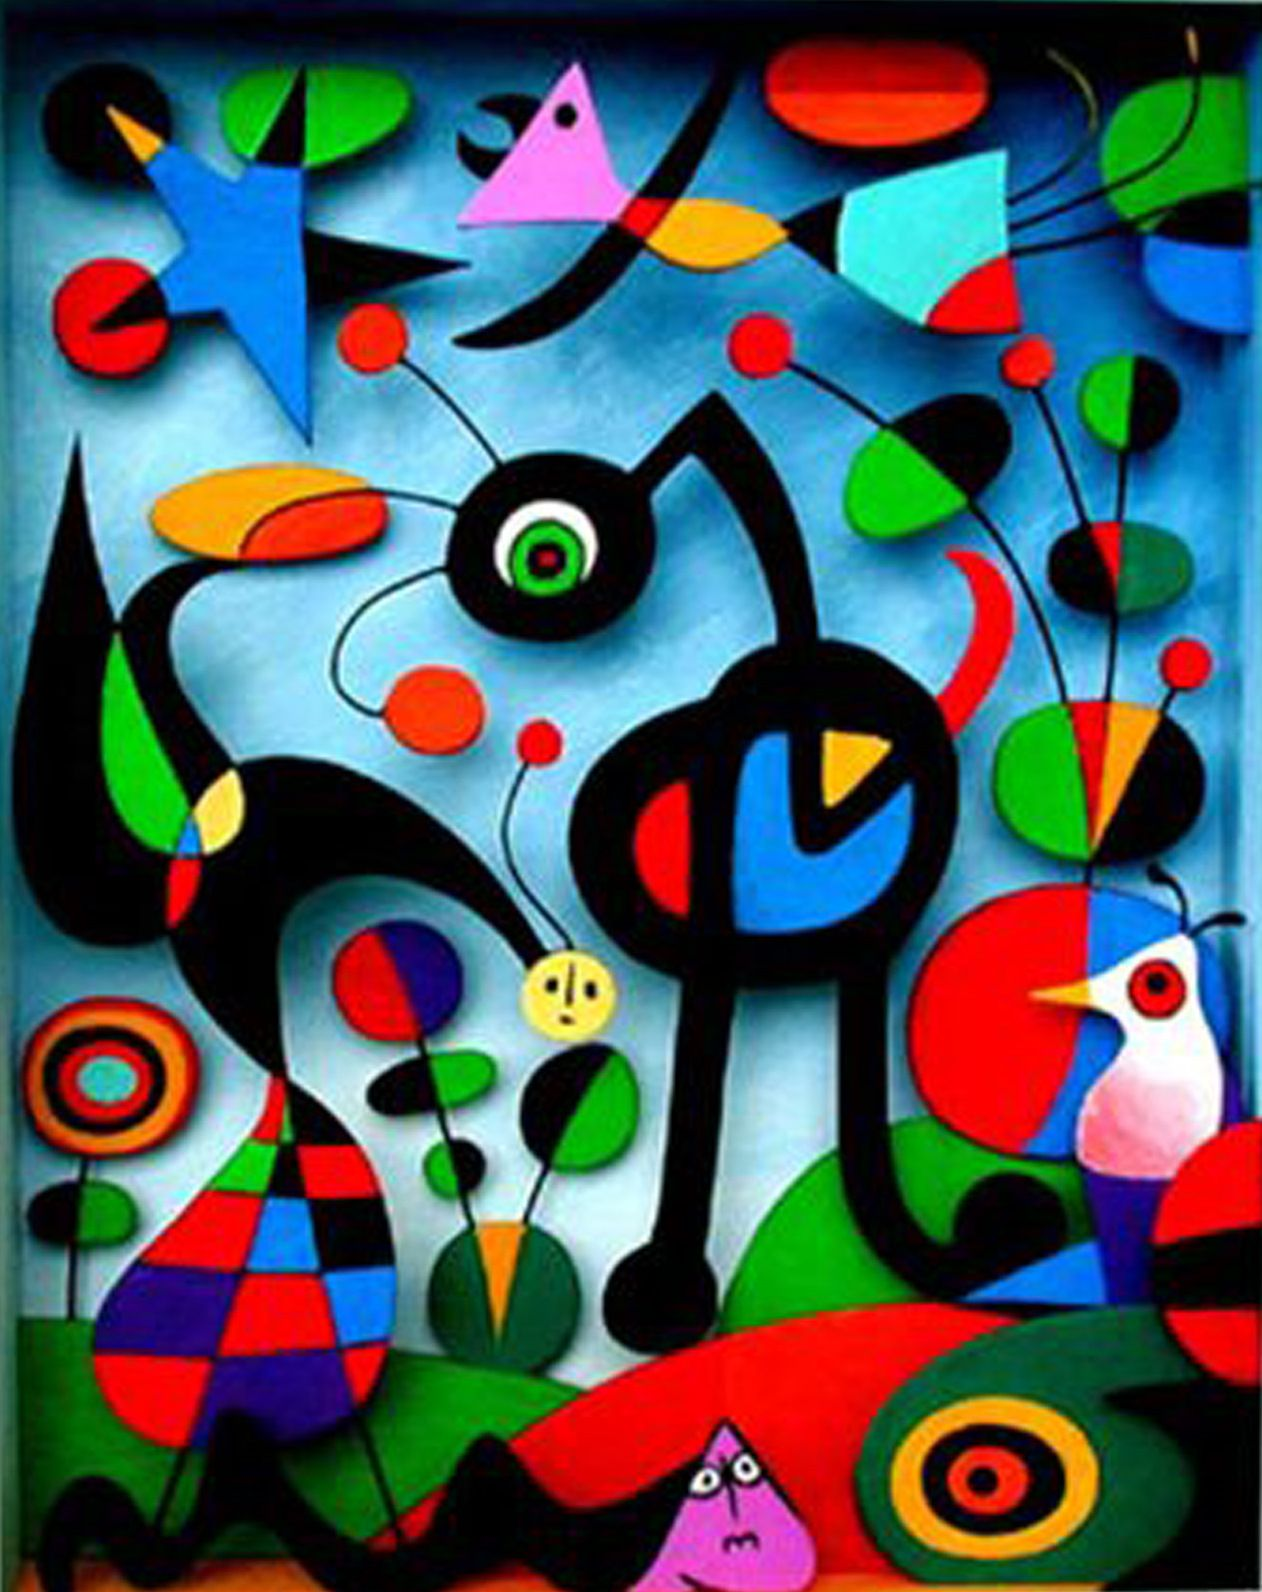 Que Es El Arte Cinetico Wikipedia 11 El Surrealismo Colourful Life Group Board Joan Miró